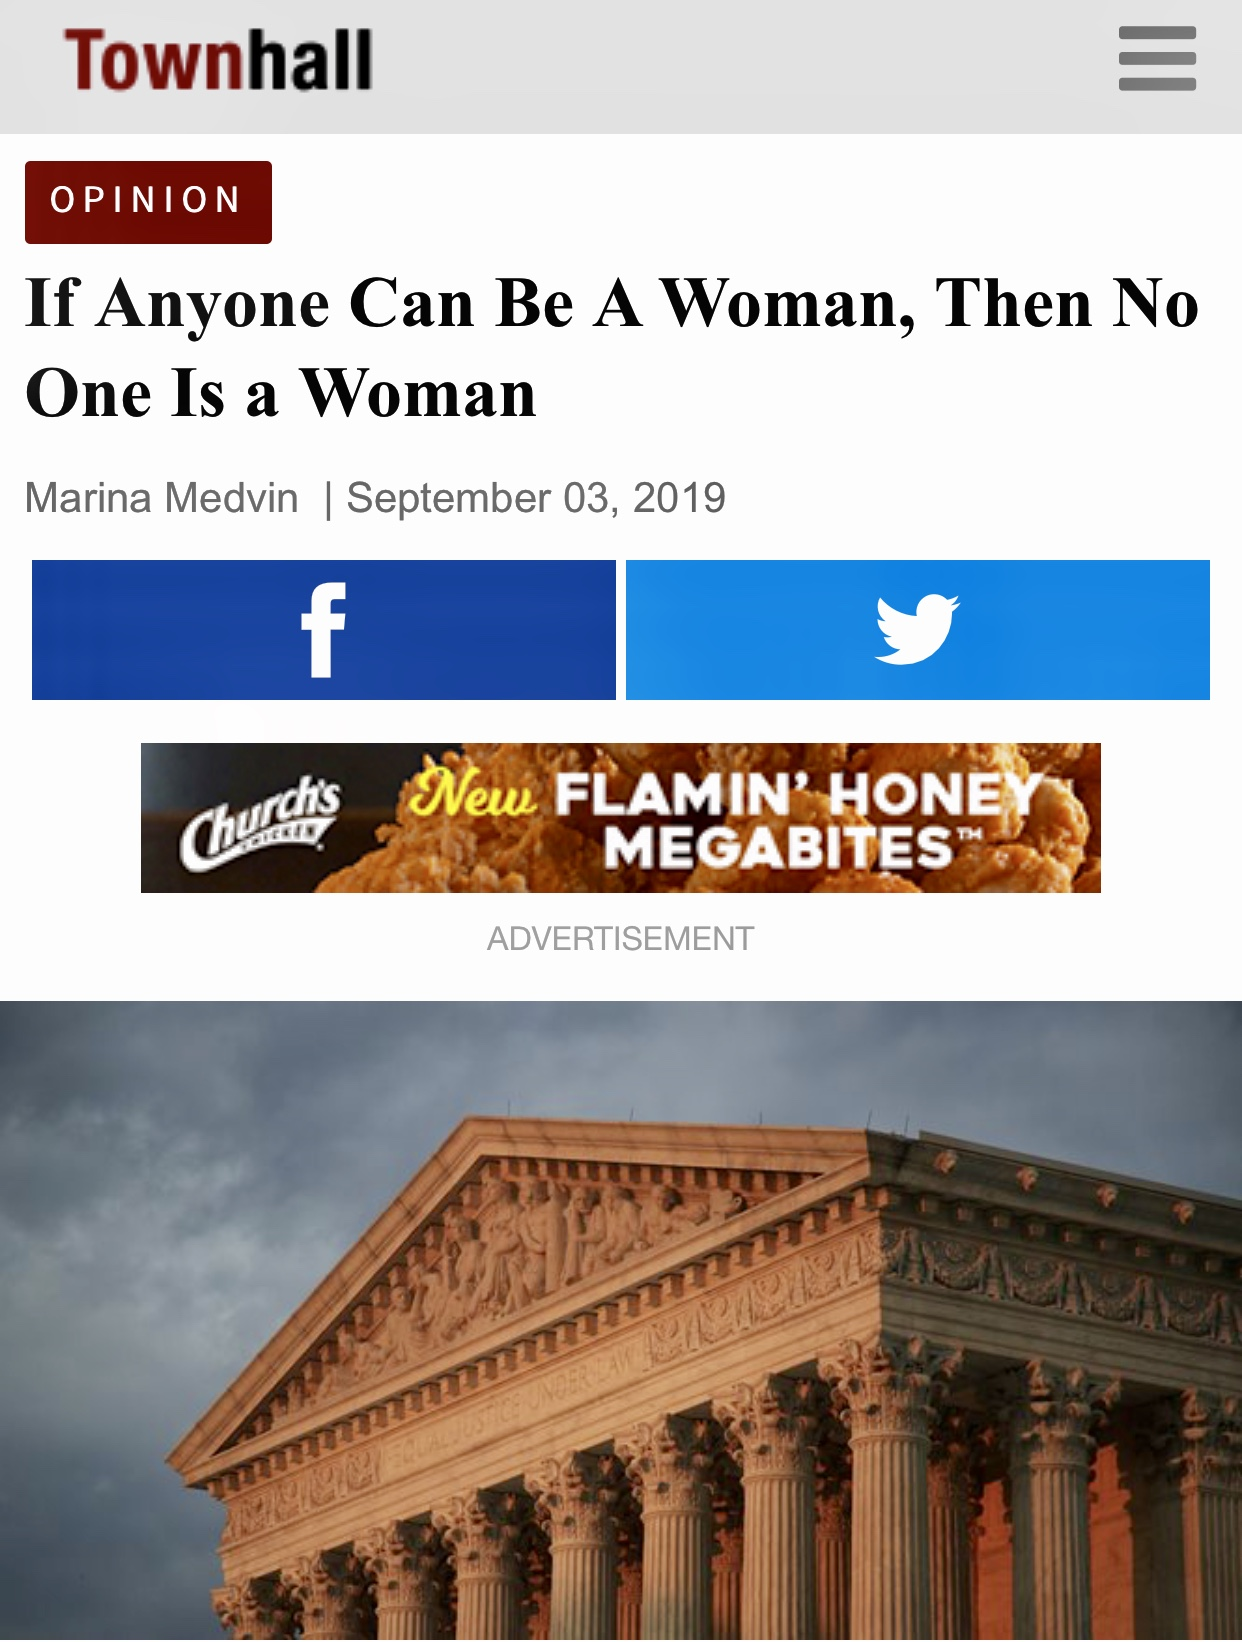 If Anyone Can Be A Woman, Then No One Is a Woman